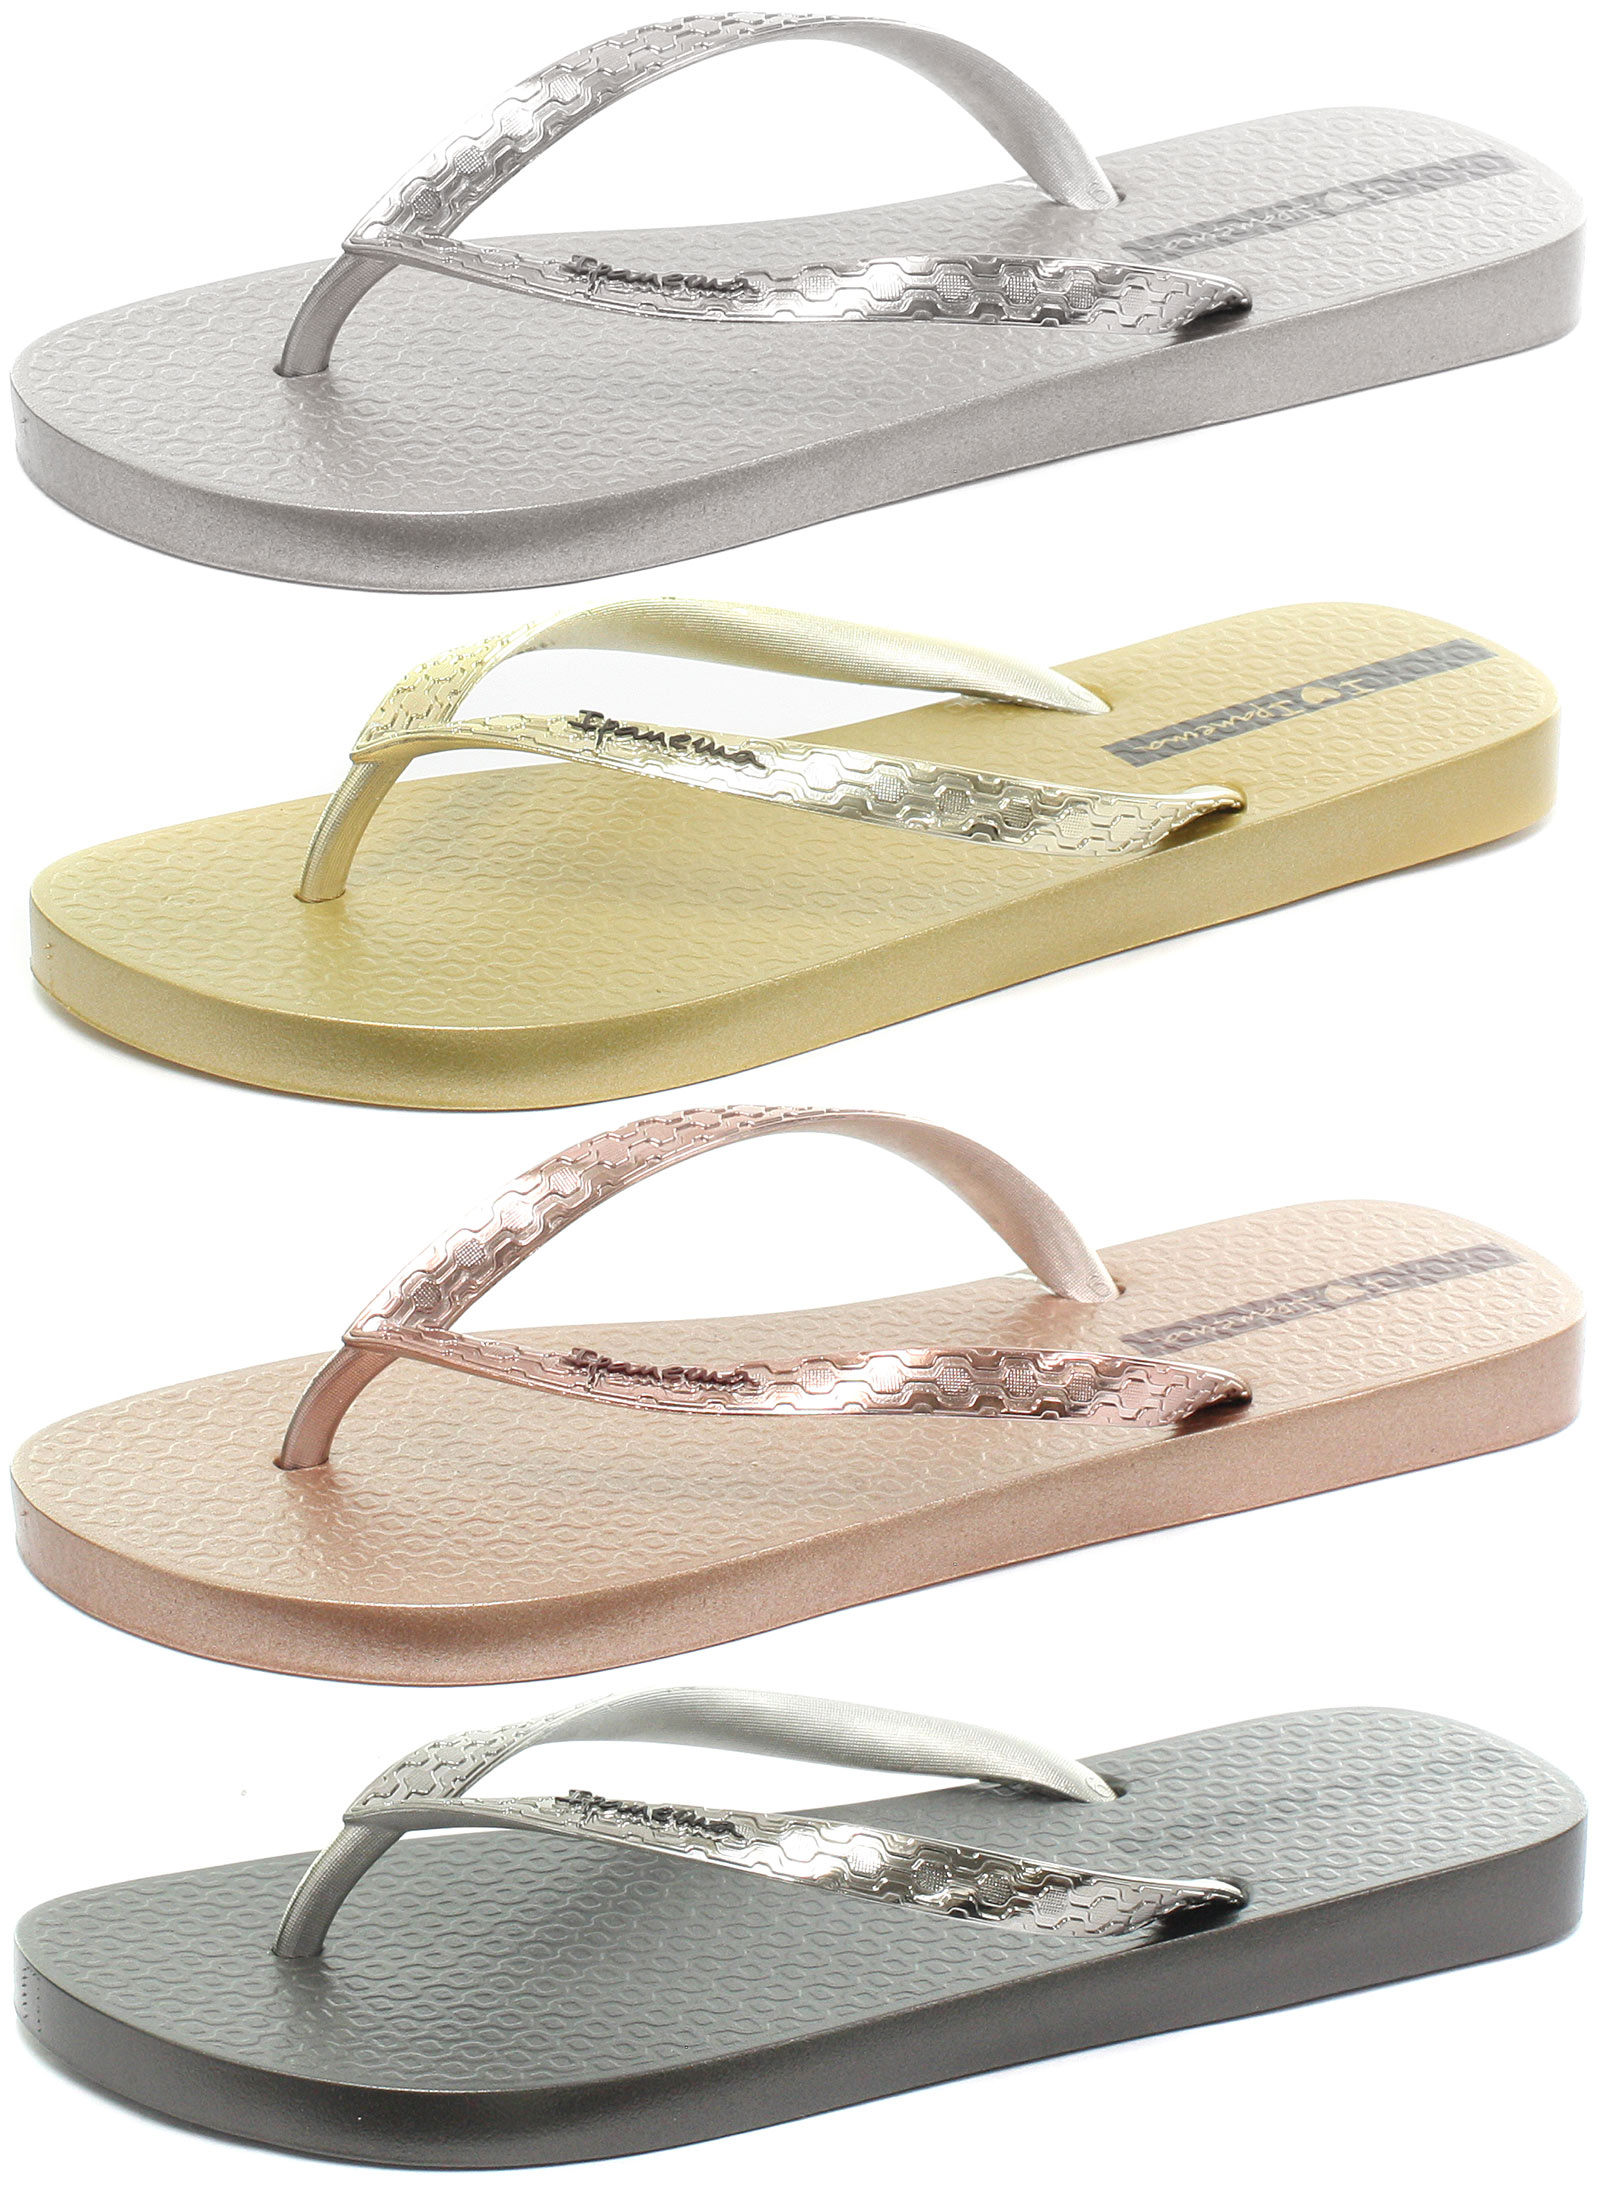 c4576aefc0f0 New Ipanema Brasil Glam Womens Flip Flops ALL SIZES AND COLOURS